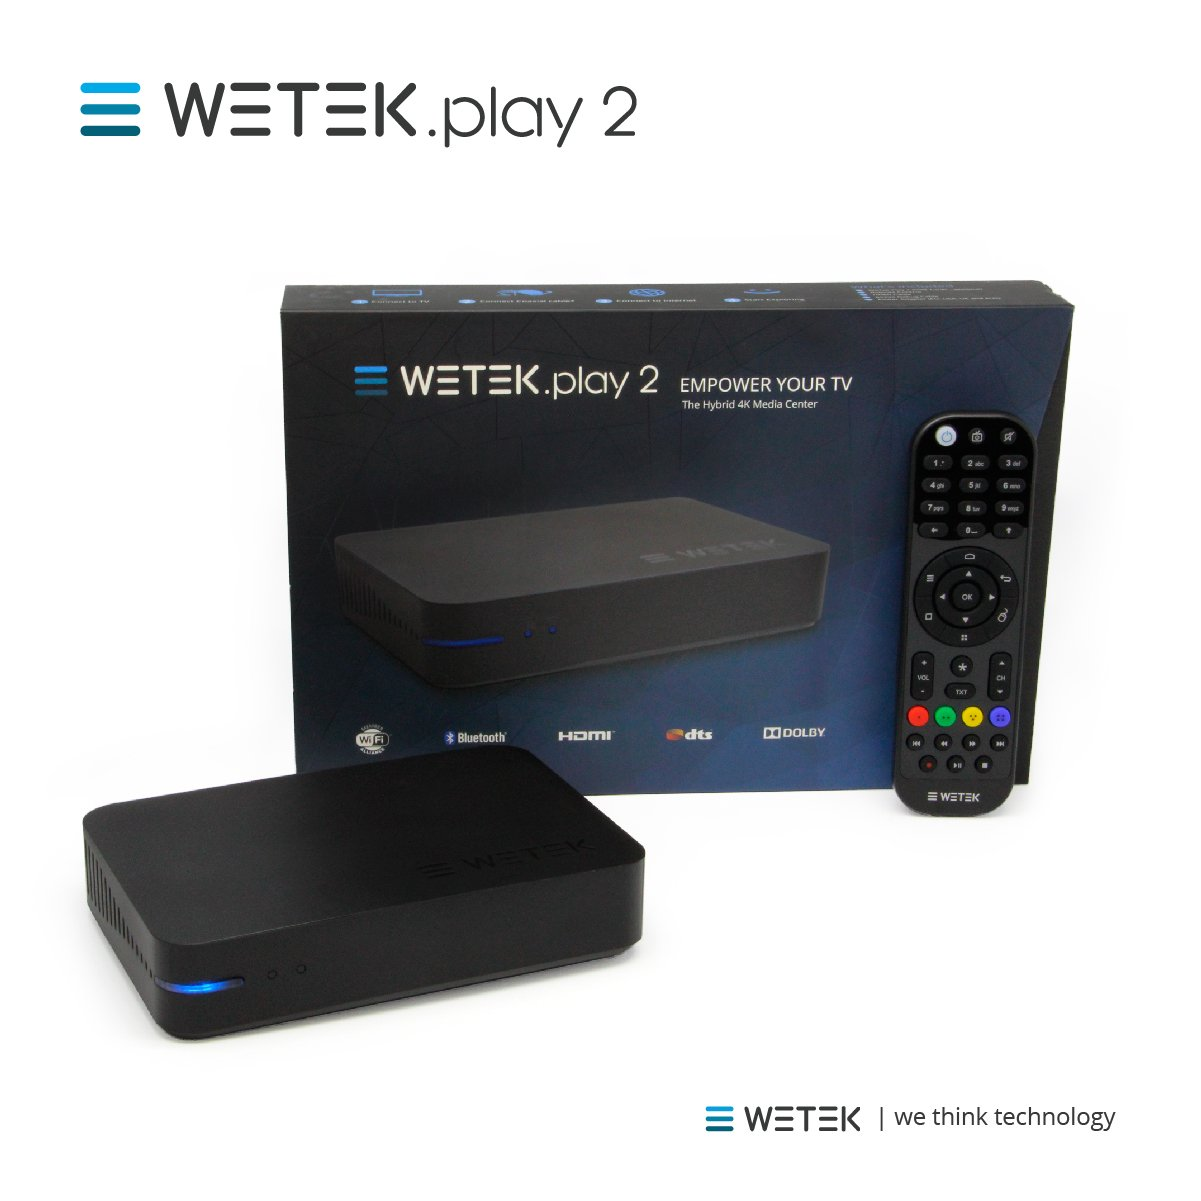 WeTek Play 2 Hybrid Android Set-top Box 4K Ultra HD IPTV/OTT 2 GB DDR3 H.265 (ATSC)